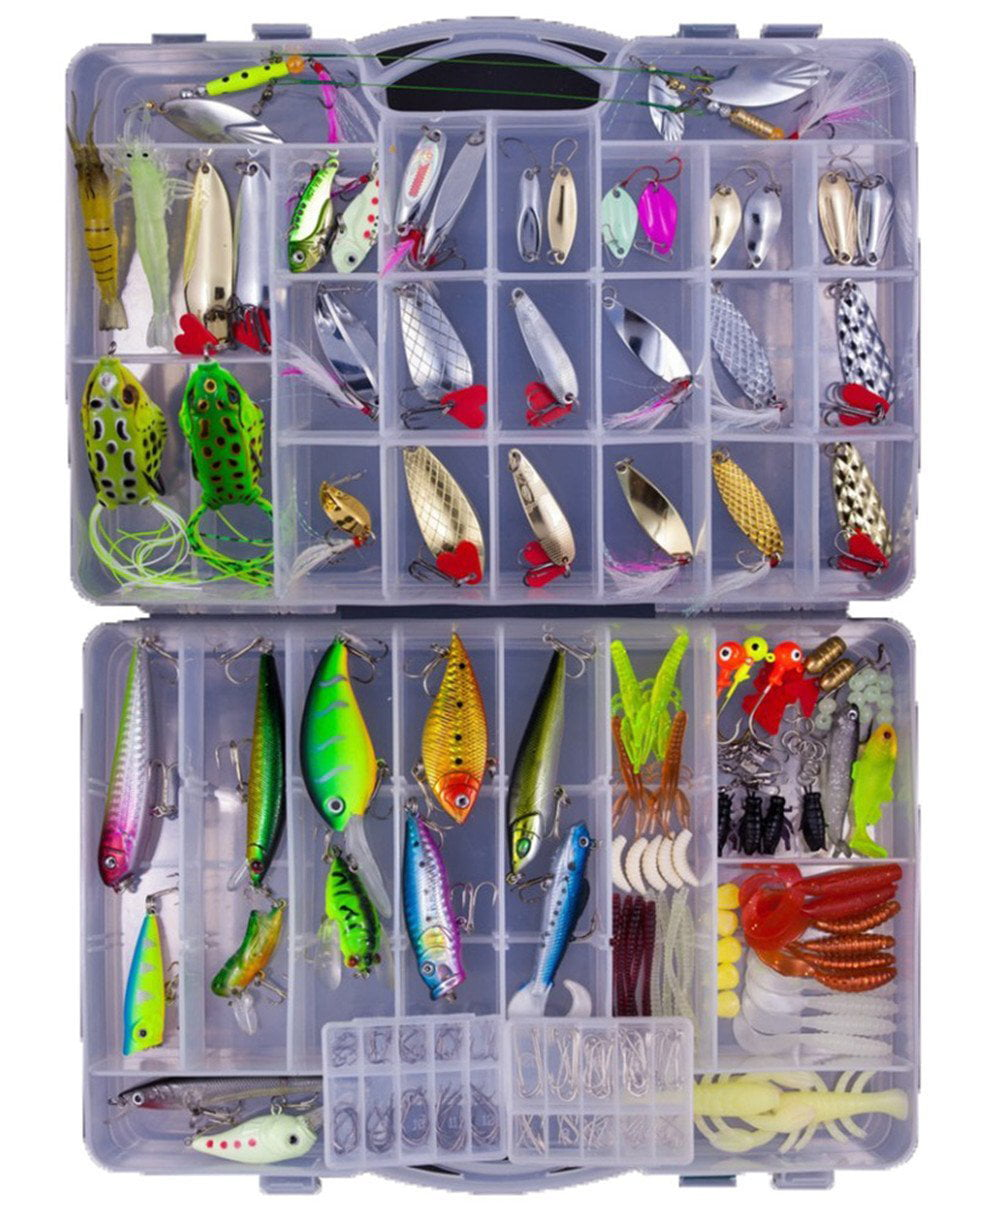 Click here to buy 250PCS BOX Fishing Lures Mixed Lots including Hard Lure Minnow Popper Crankbaits VIB Topwater Diving Floating Lures Soft....